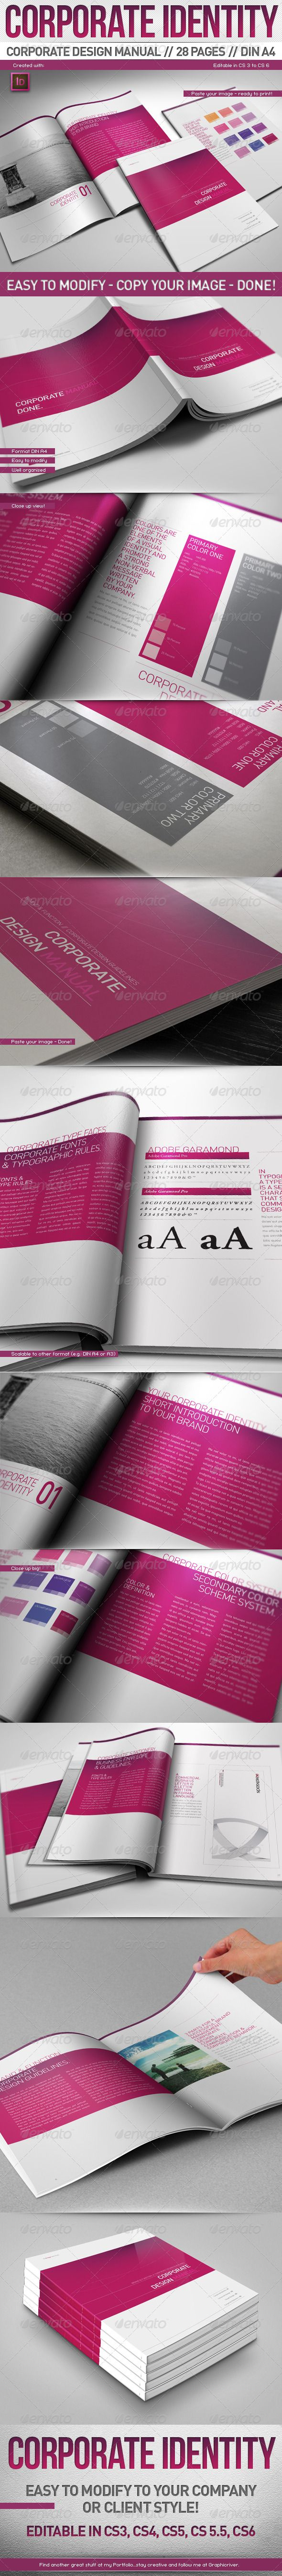 GraphicRiver Corporate Design Manual Guide DIN A4 28 Pages 3286103